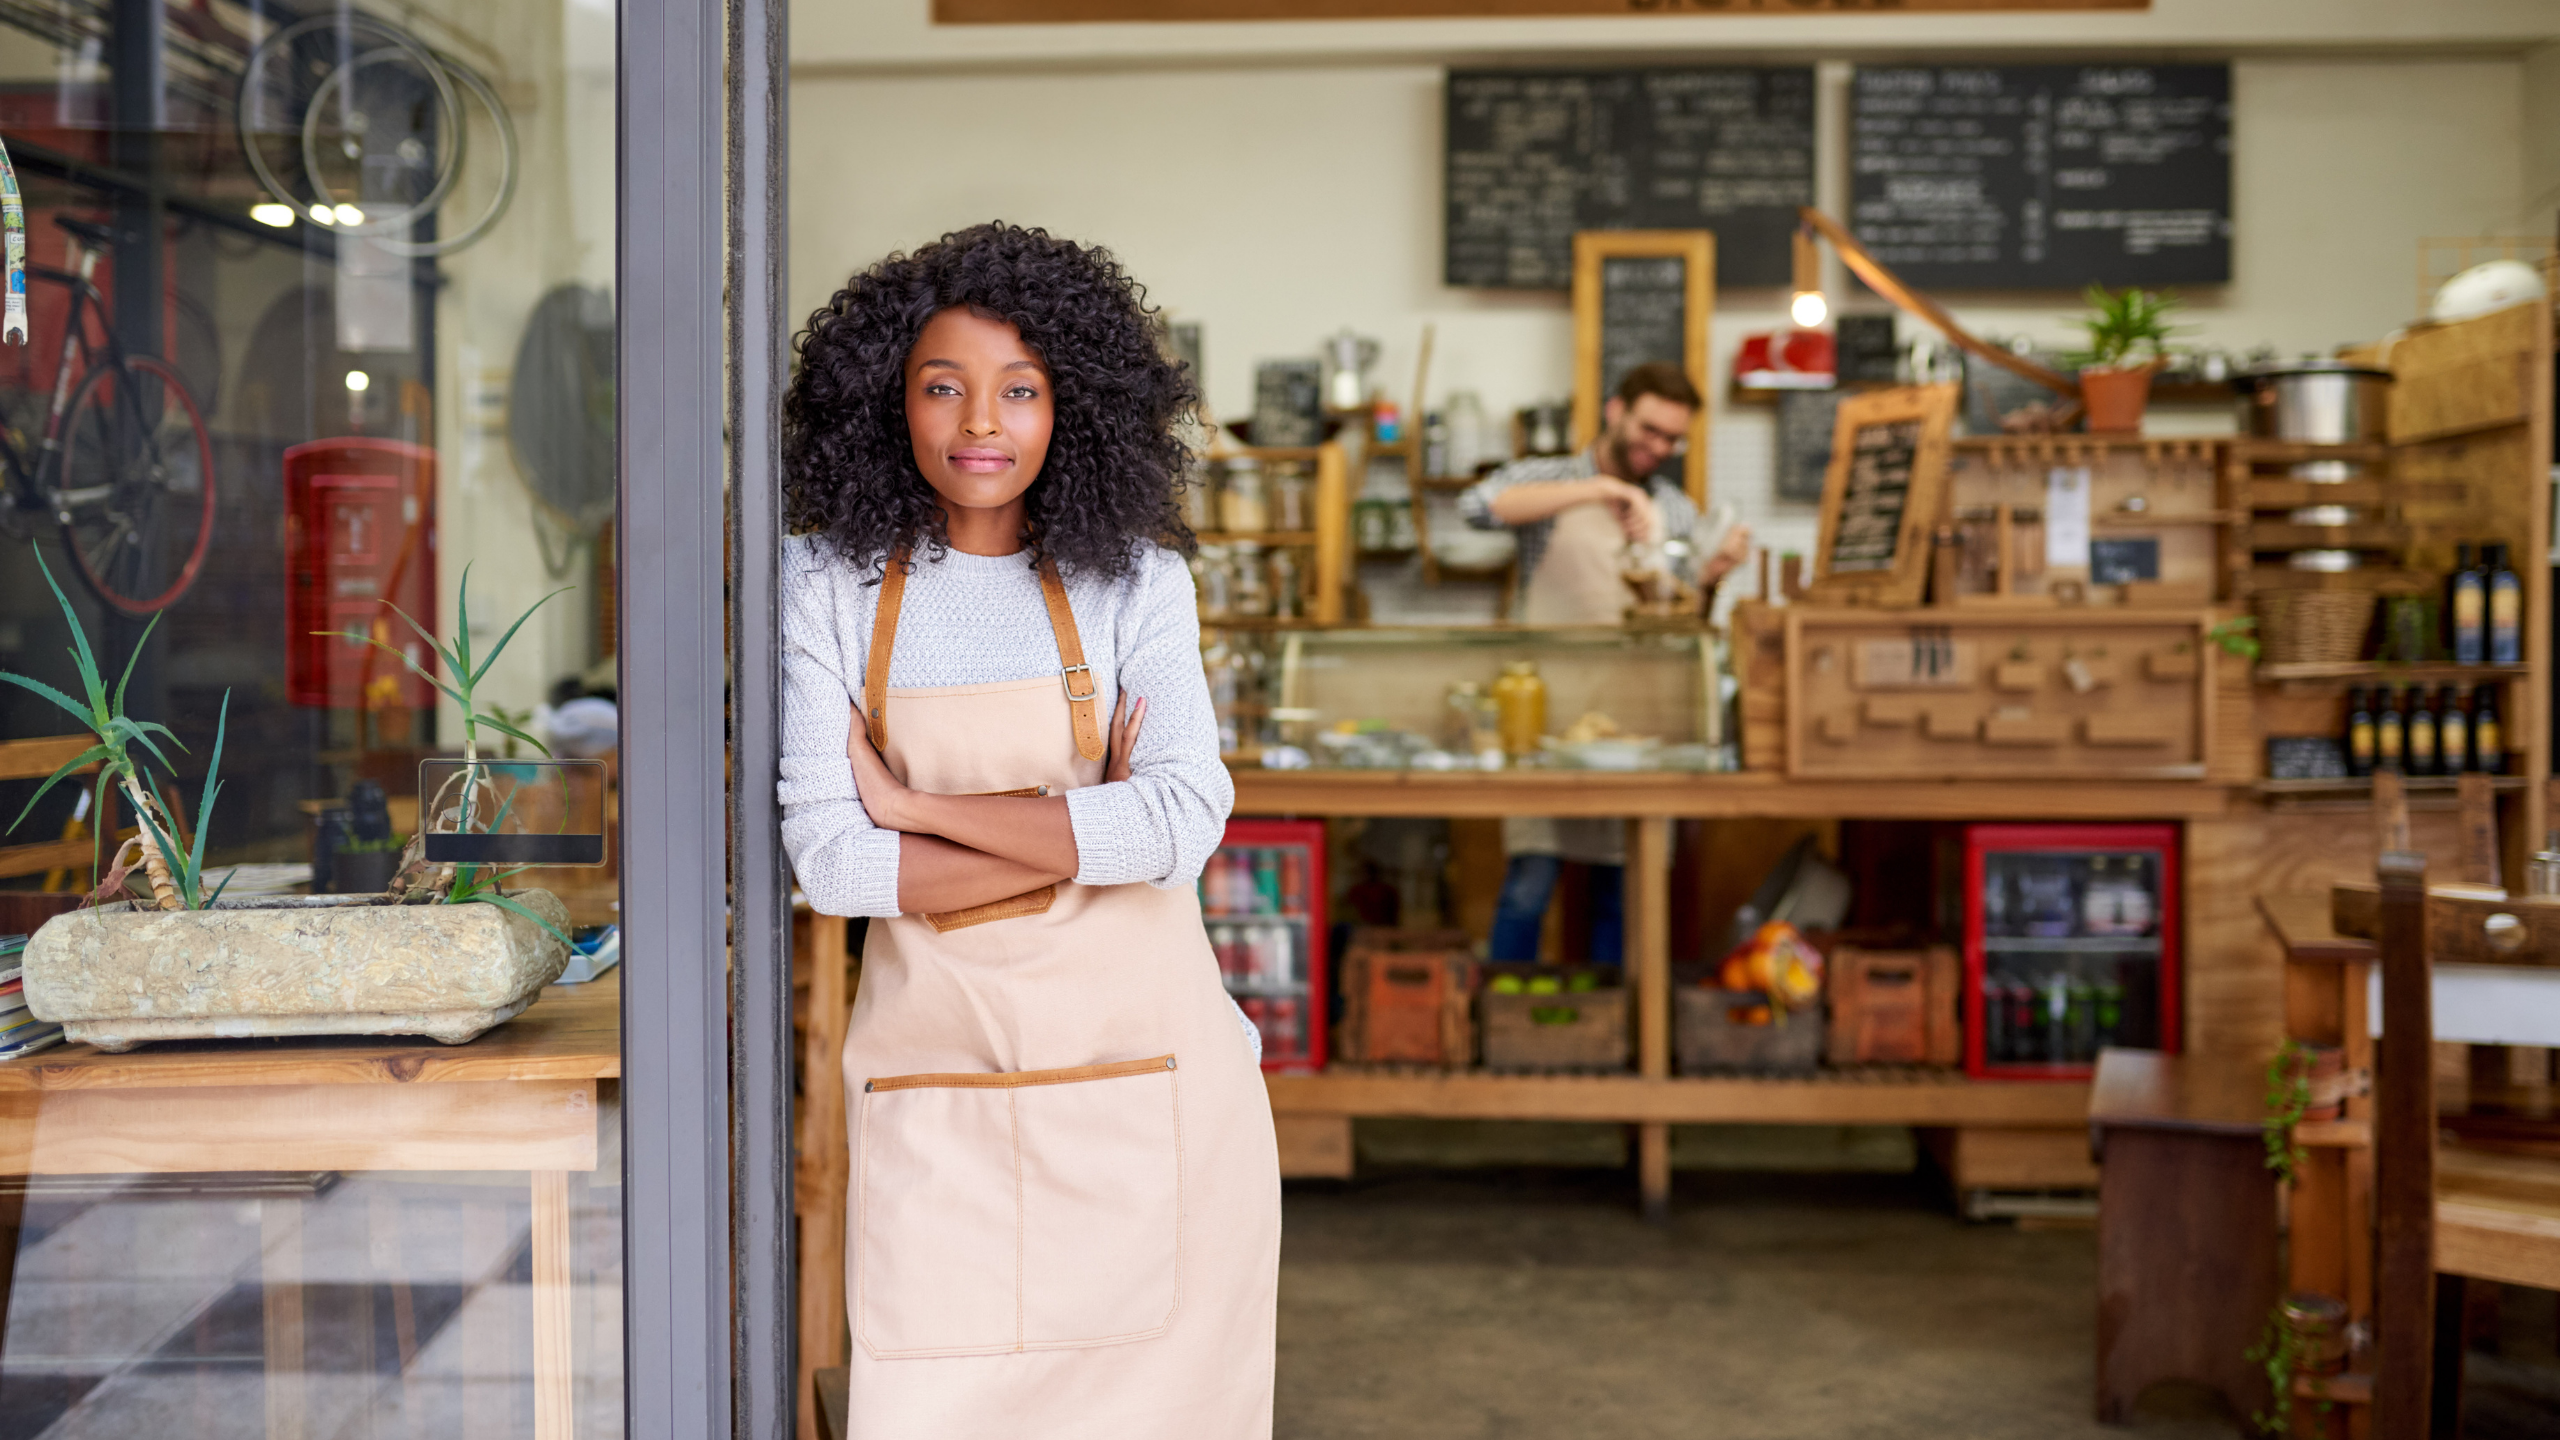 Small businesses continue to feel the effects